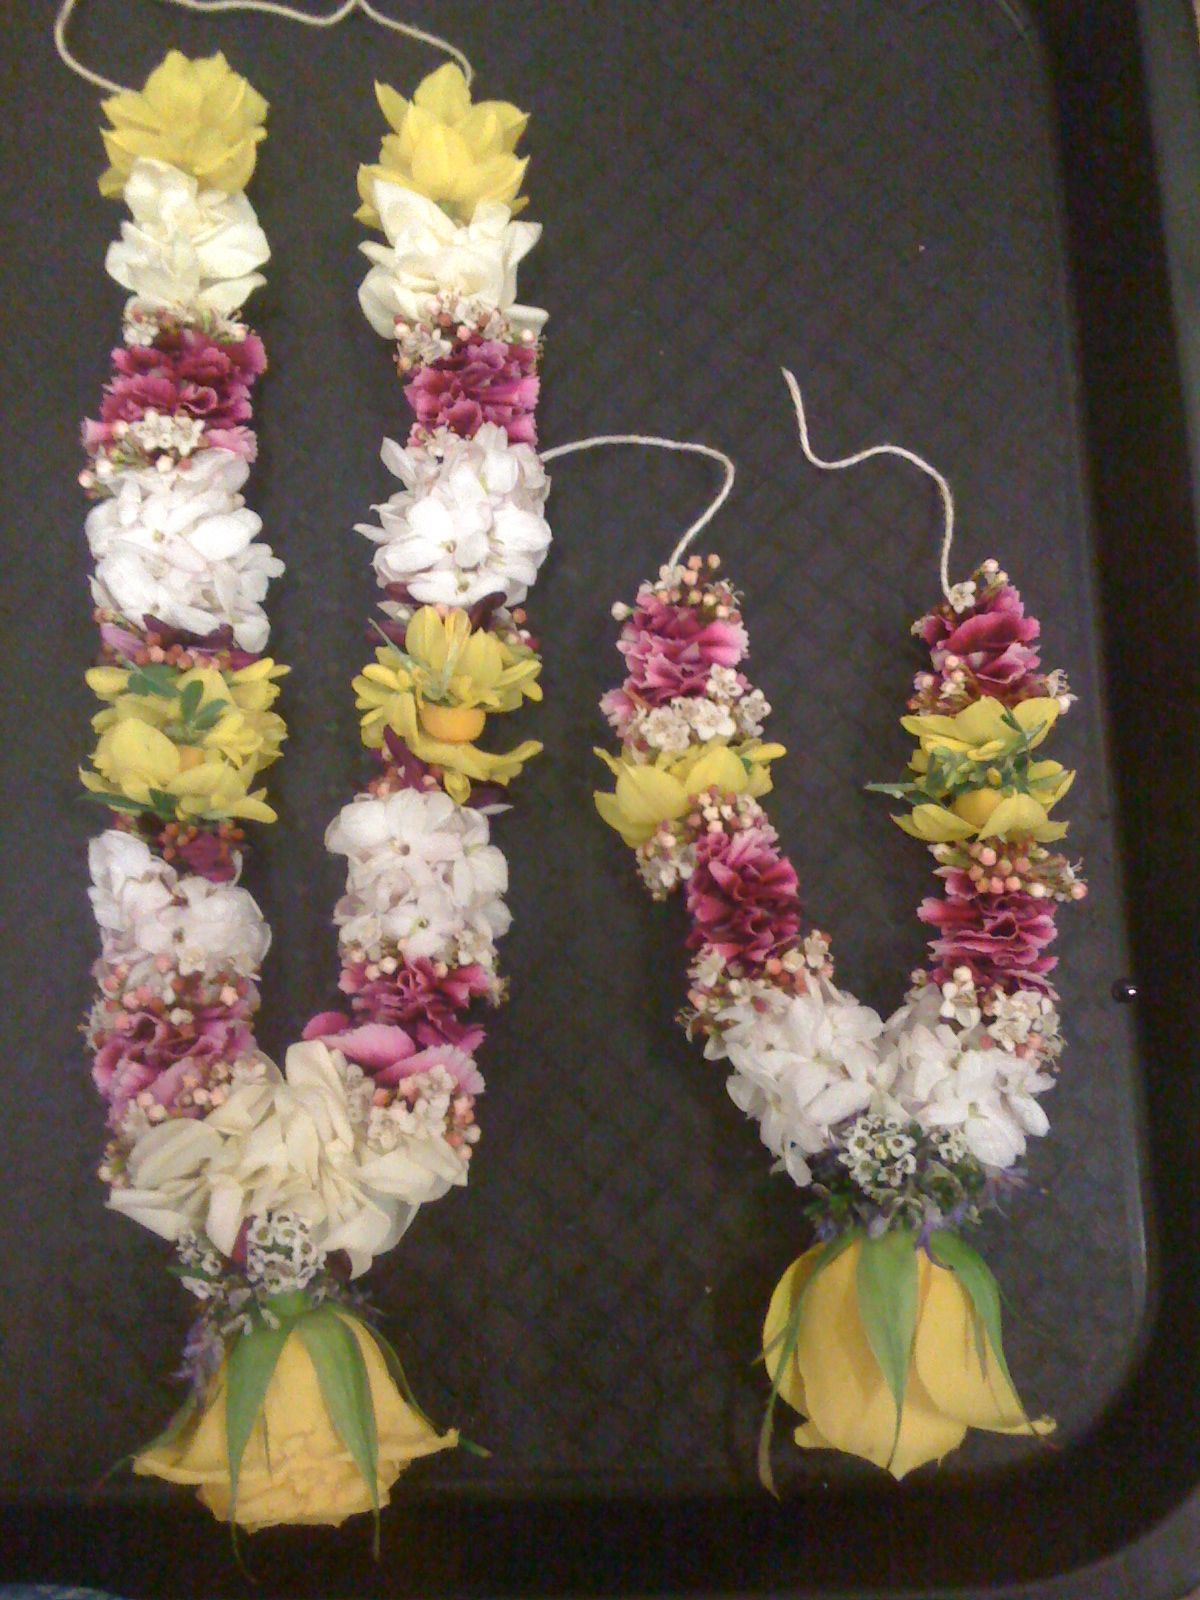 Small flowers garland garland thai flower pinterest garlands small flowers garland izmirmasajfo